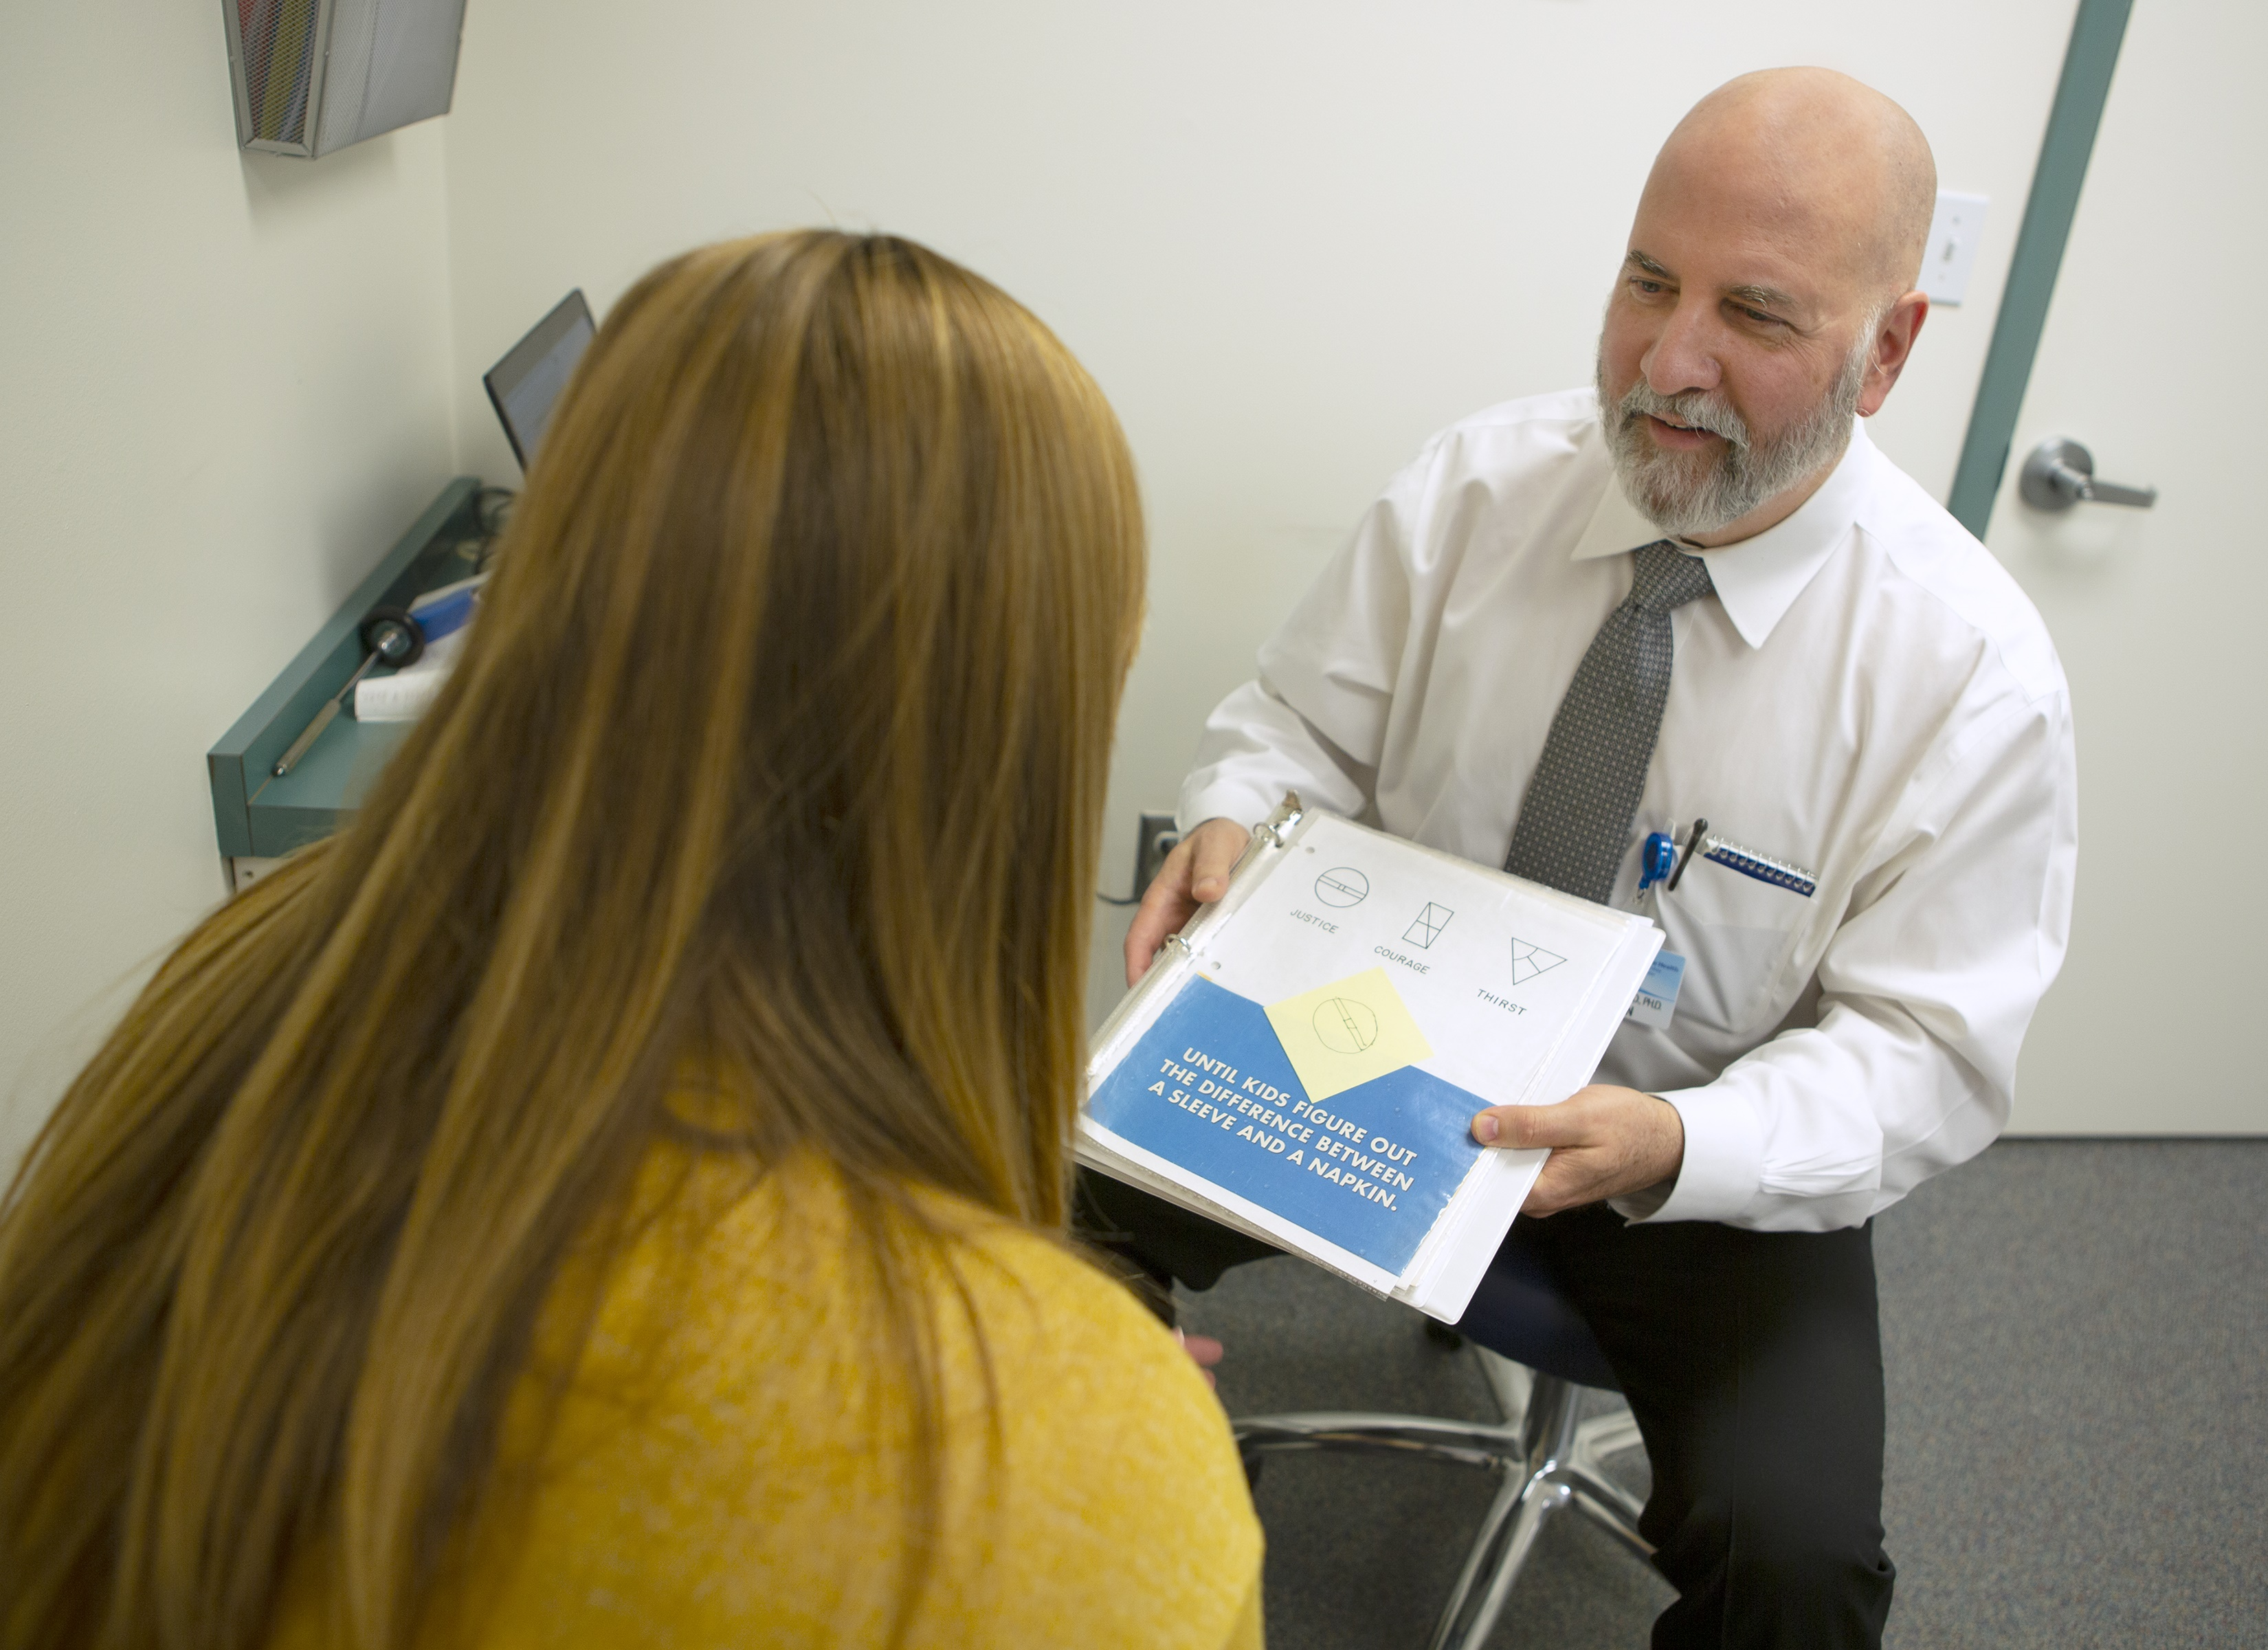 A male physician wearing a tie sits on a stool in an exam room, displaying a page with various diagrams on it to a female patient who sits across from him.